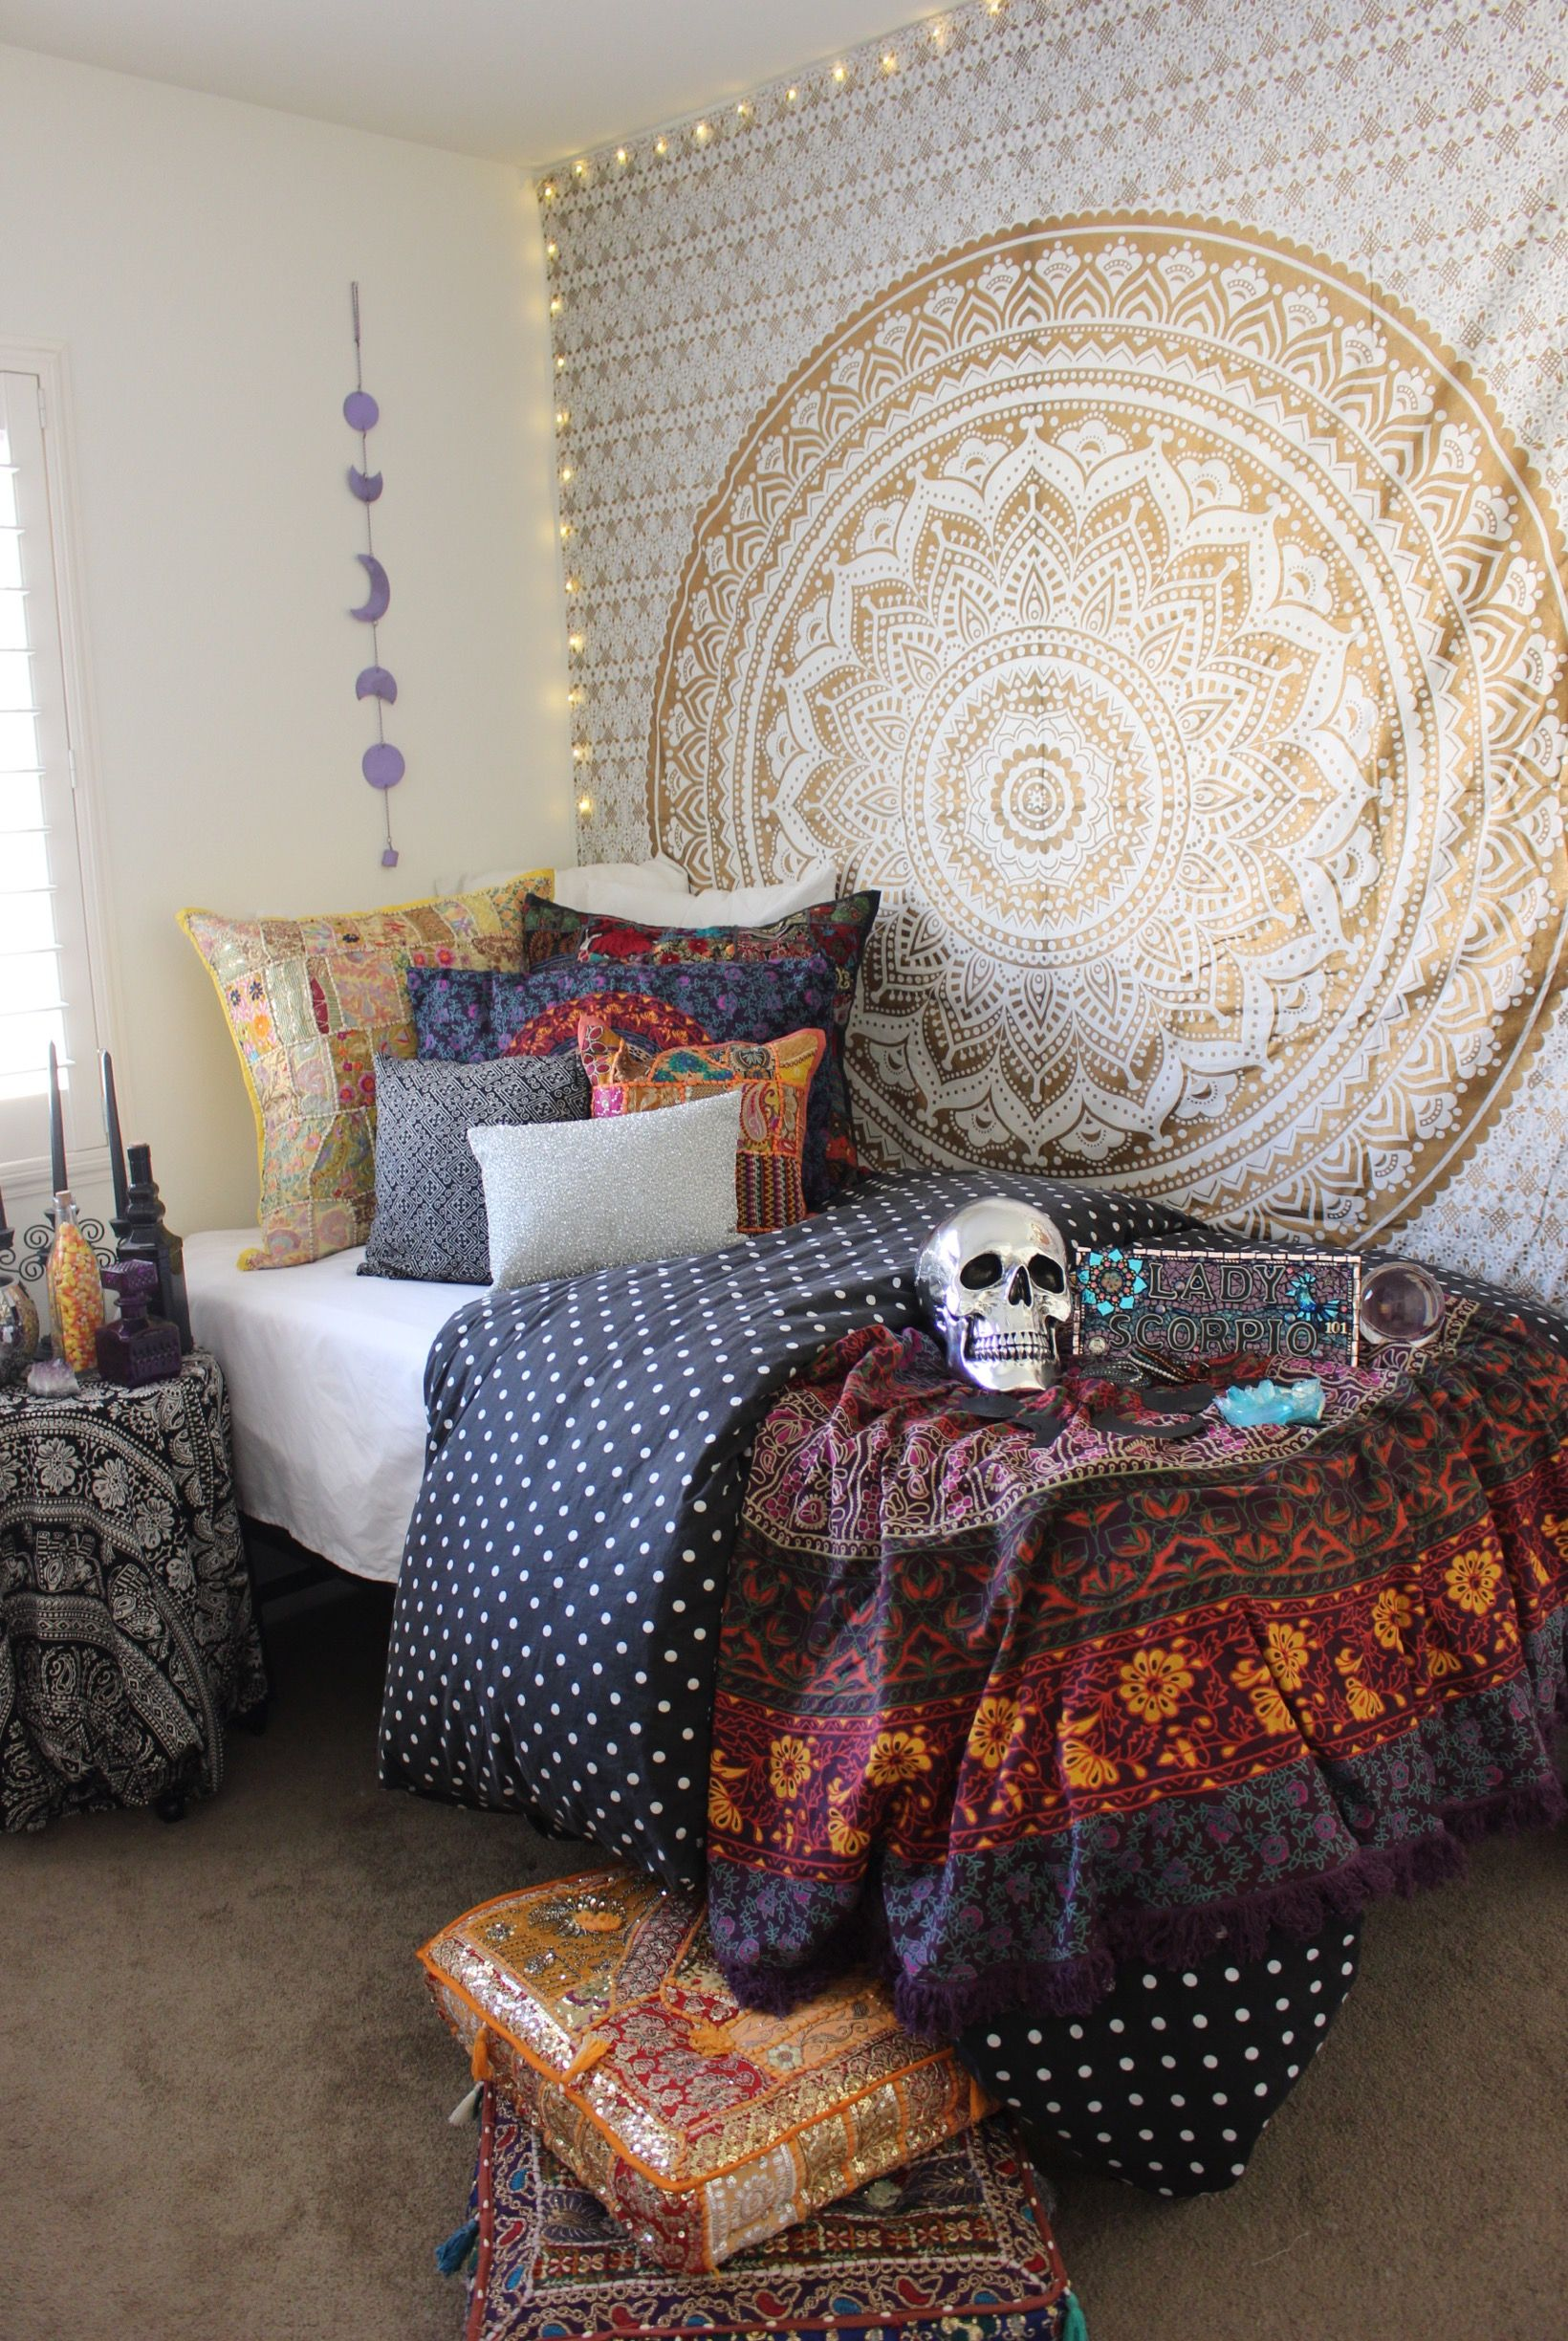 Halloween Decoration Interieur Interior Decorating Advice For The Decorating Challenged My Own